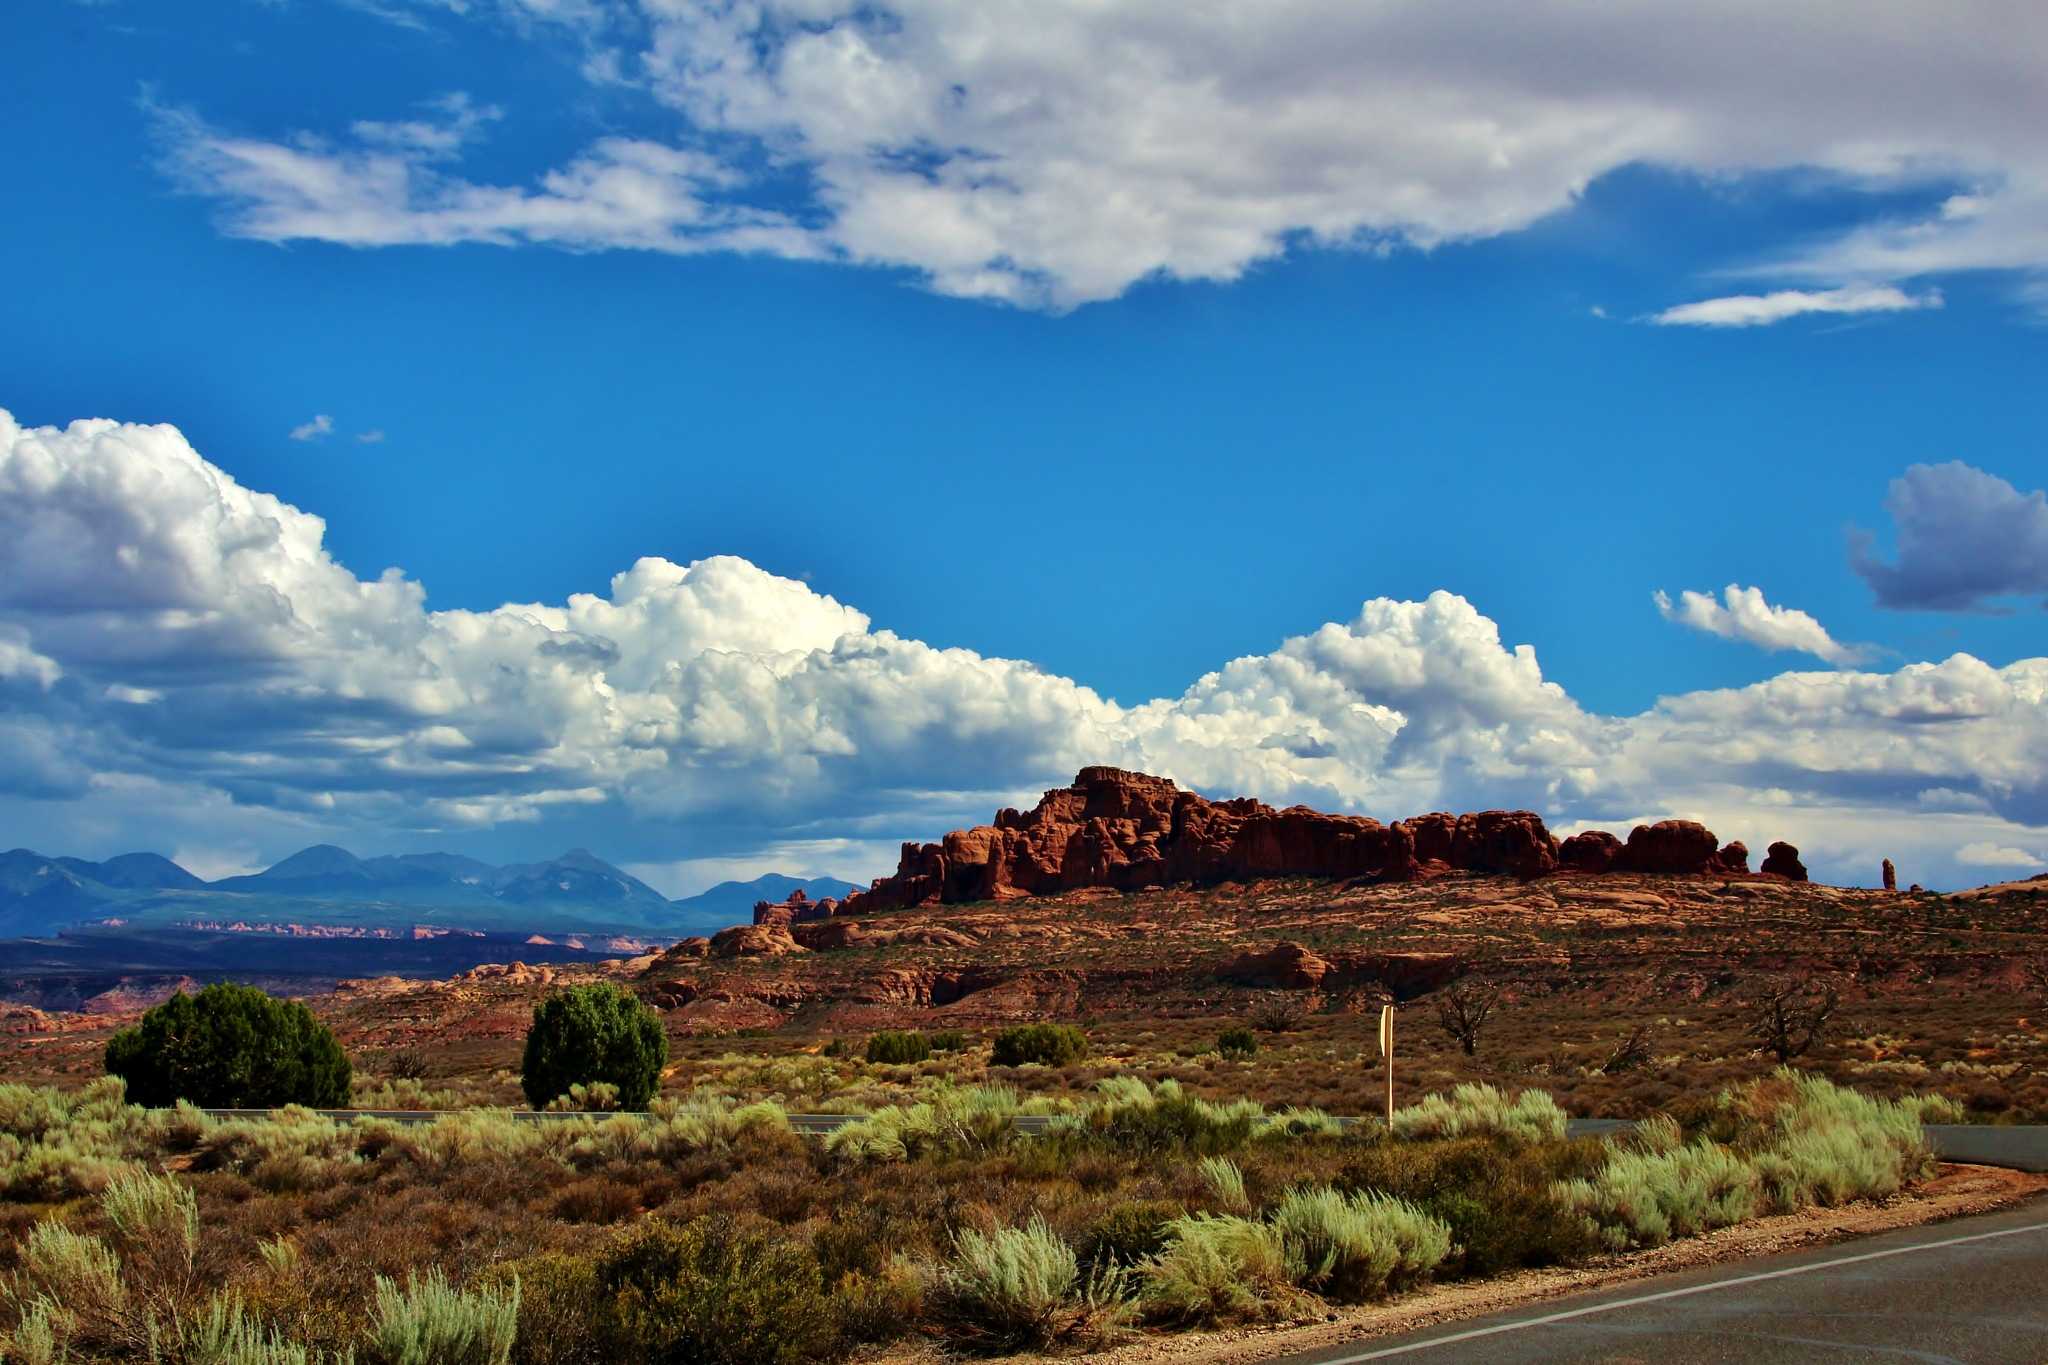 Distant Butte by yehaa_2001